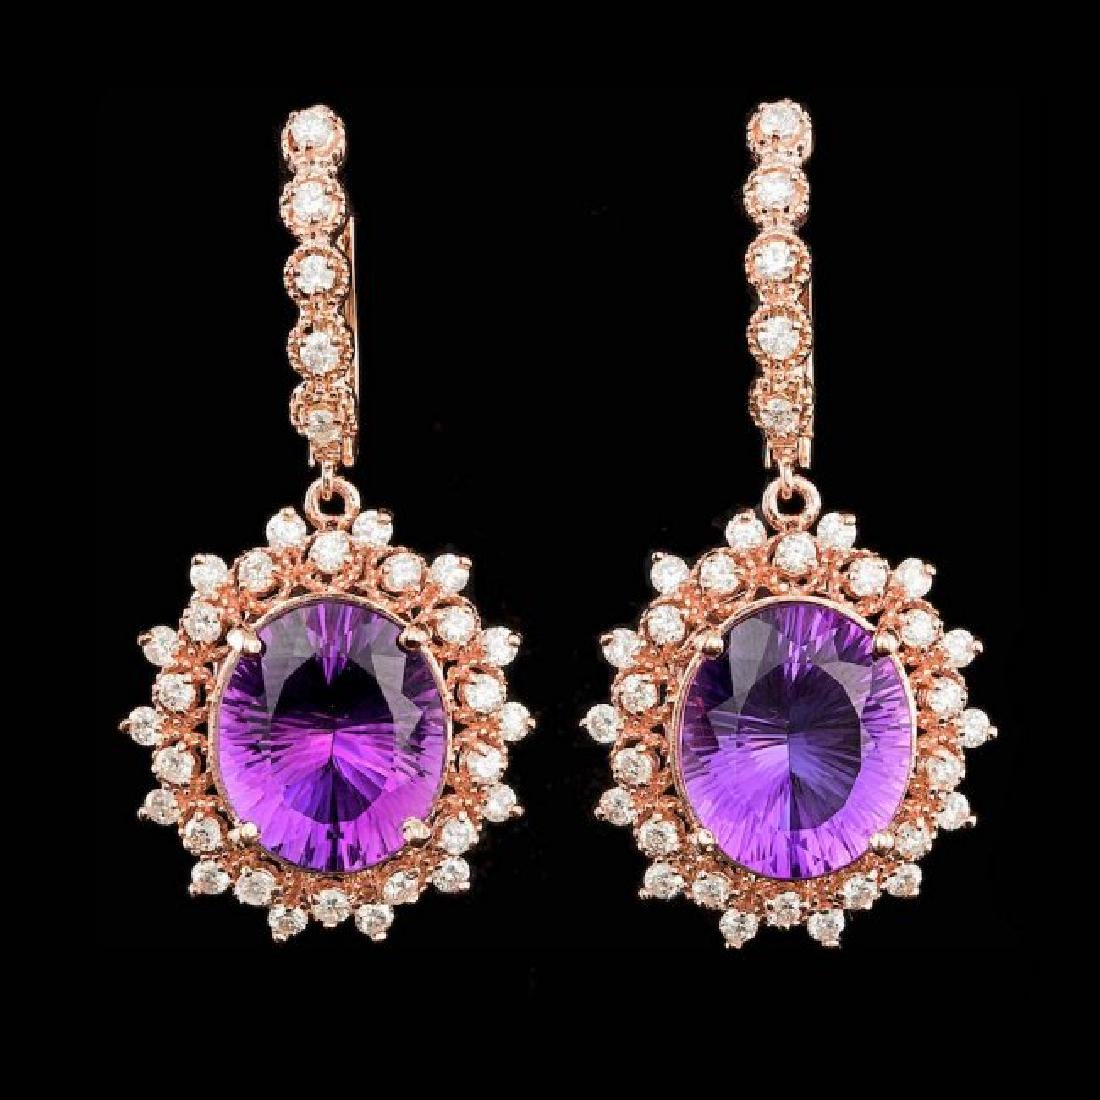 14k Rose 10.00ct Amethyst 1.85ct Diamond Earrings